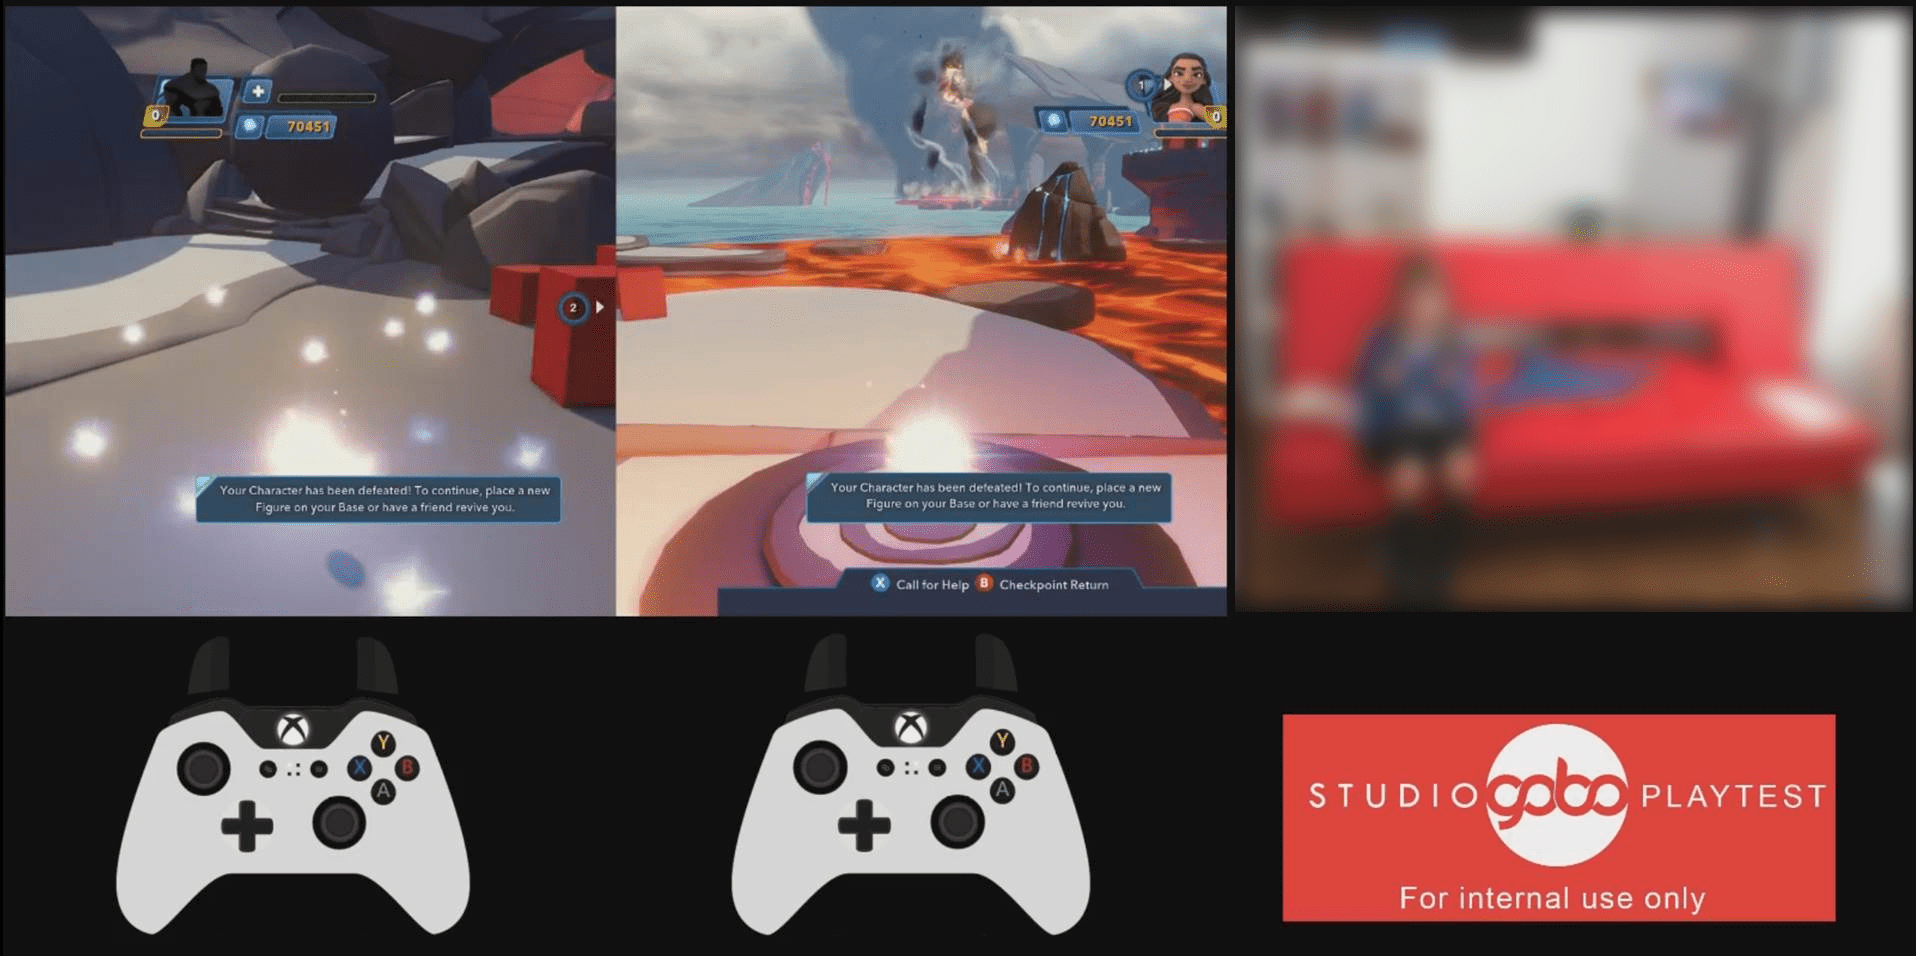 A capture from a typical usability session, featuring game footage, a live room camera, and gamepads displaying inputs from players